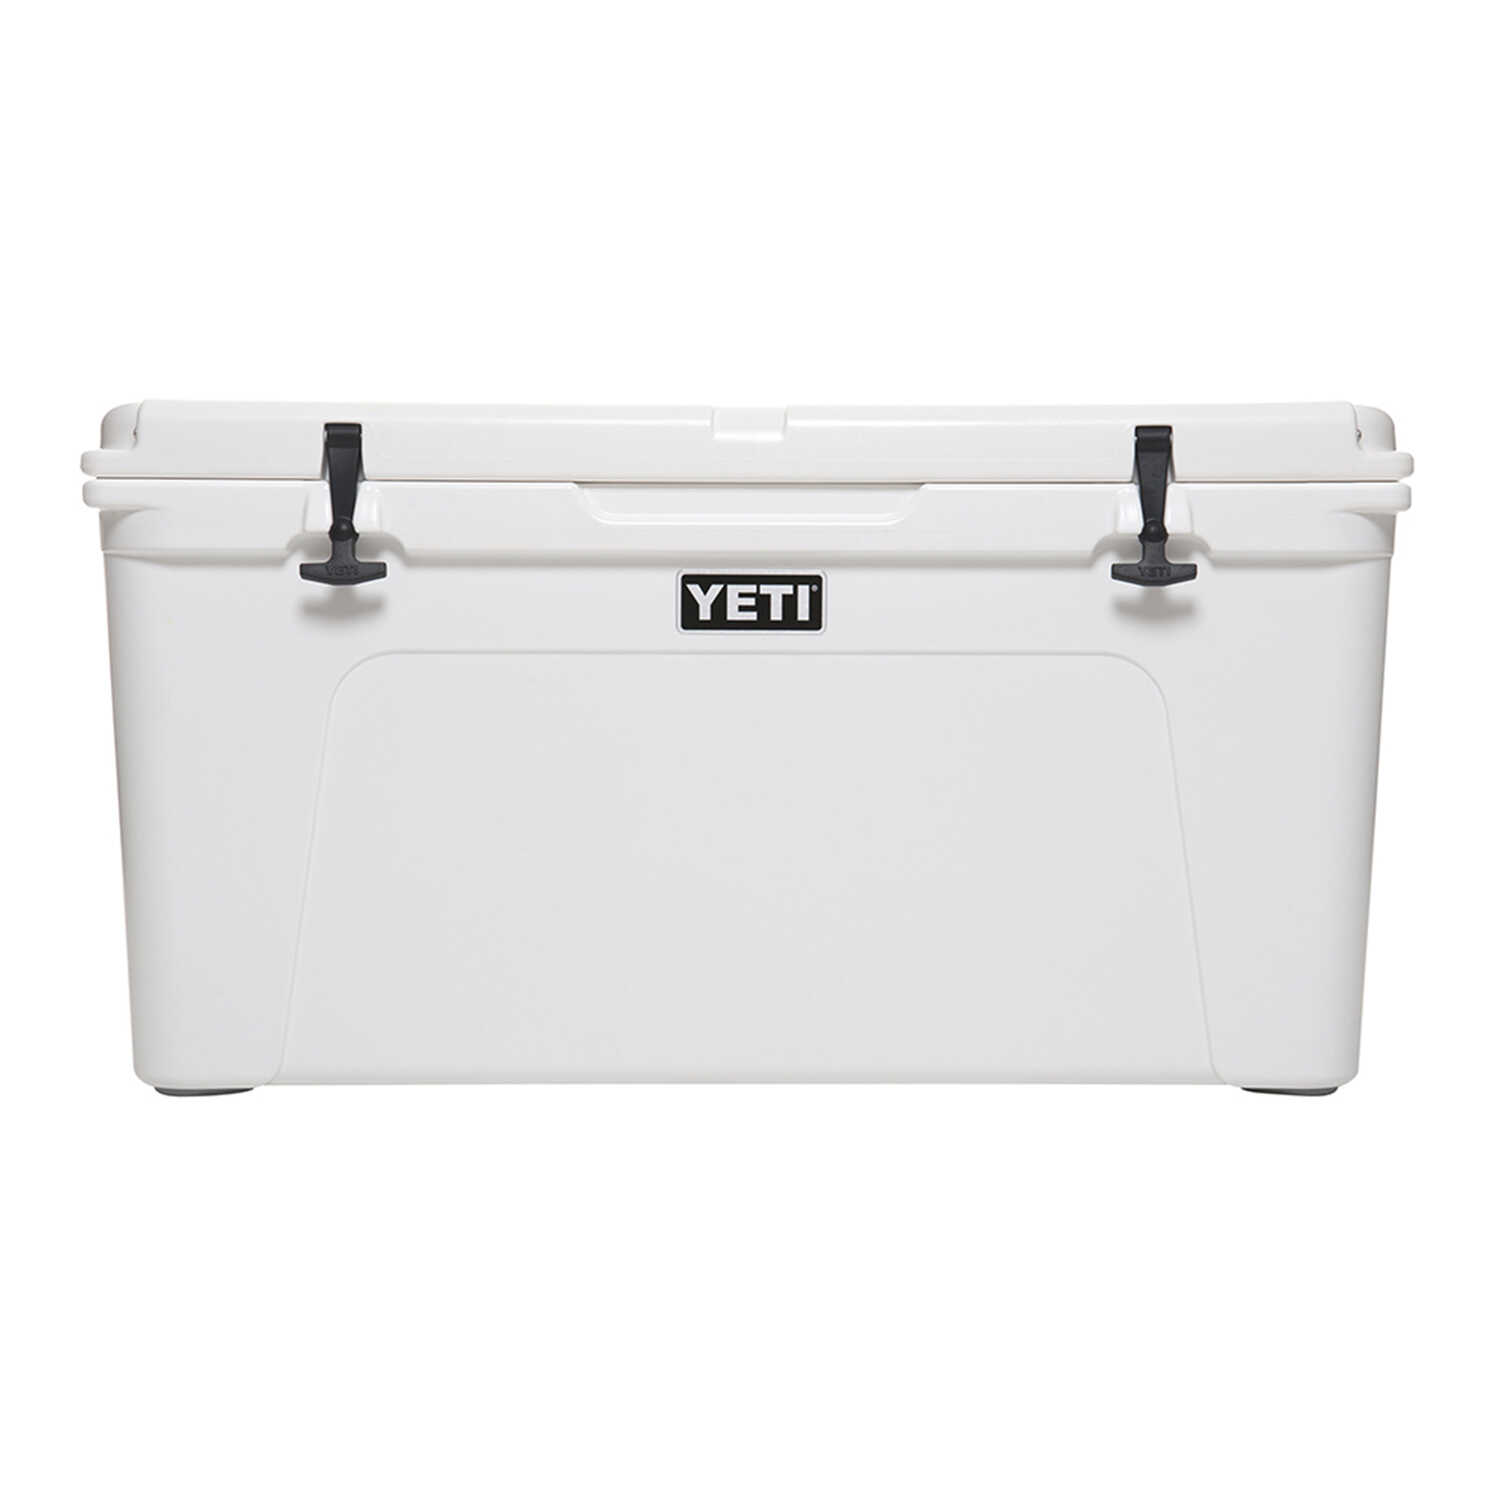 YETI  Tundra 110  Cooler  65 can White